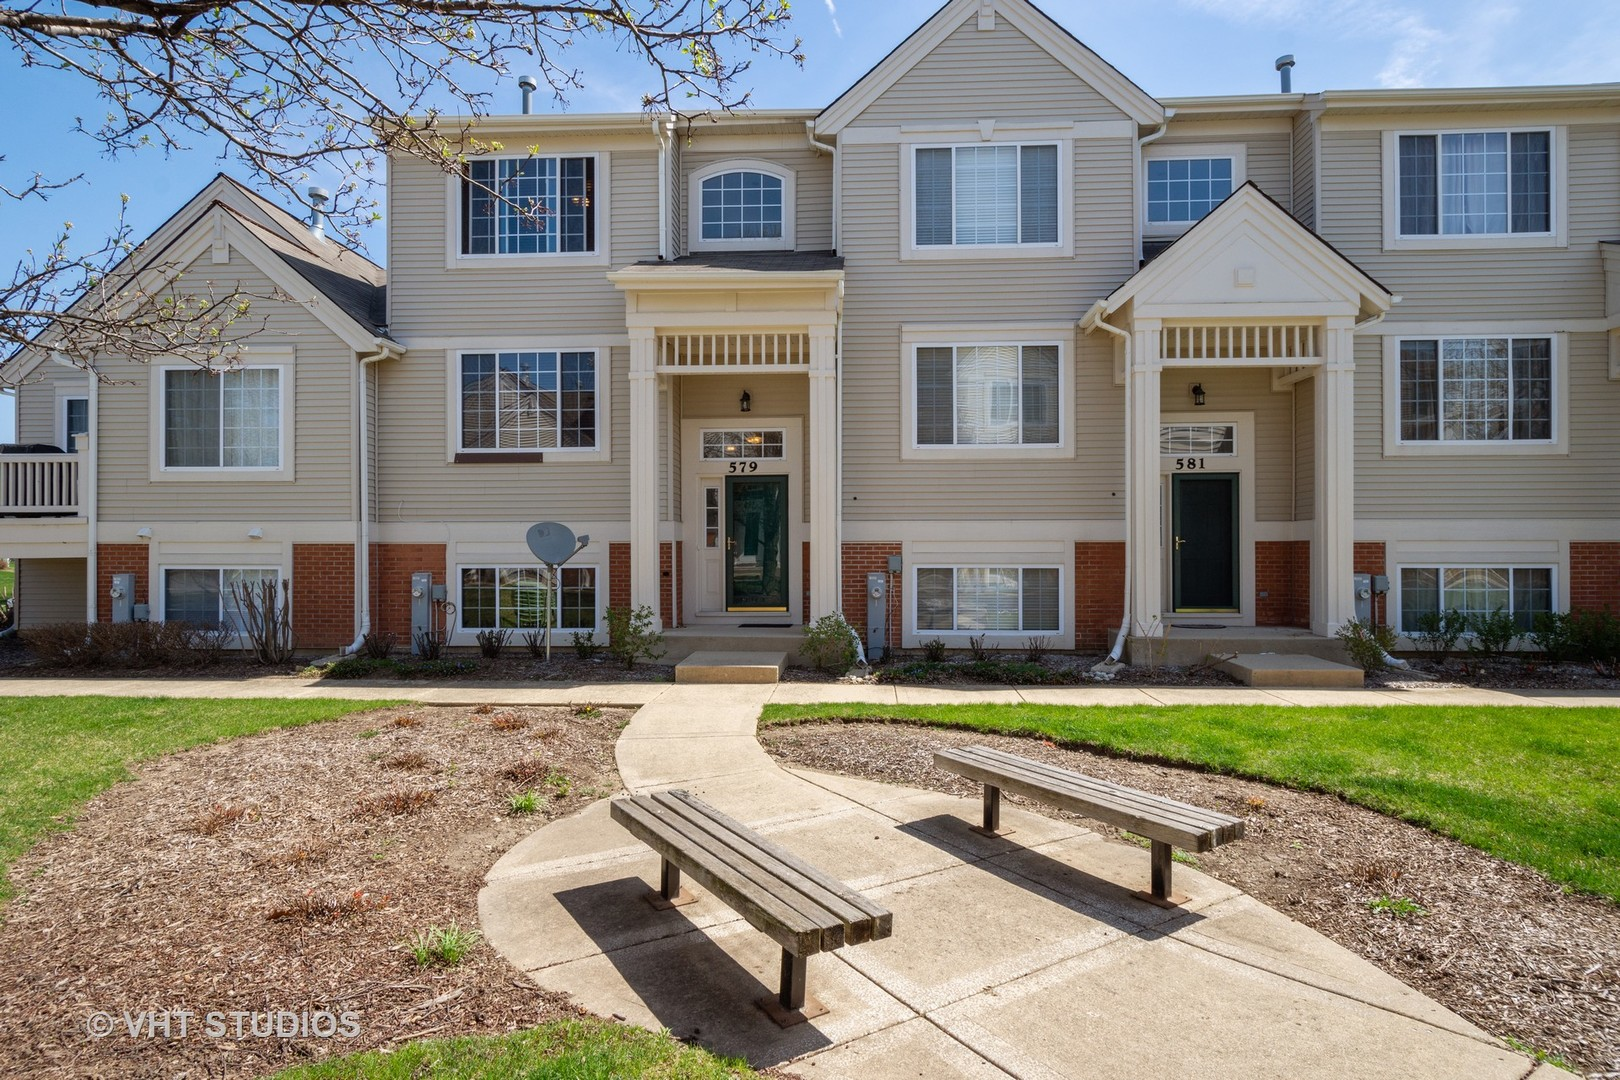 Photo for 579 Cary Woods Circle, Cary, IL 60013 (MLS # 10496704)